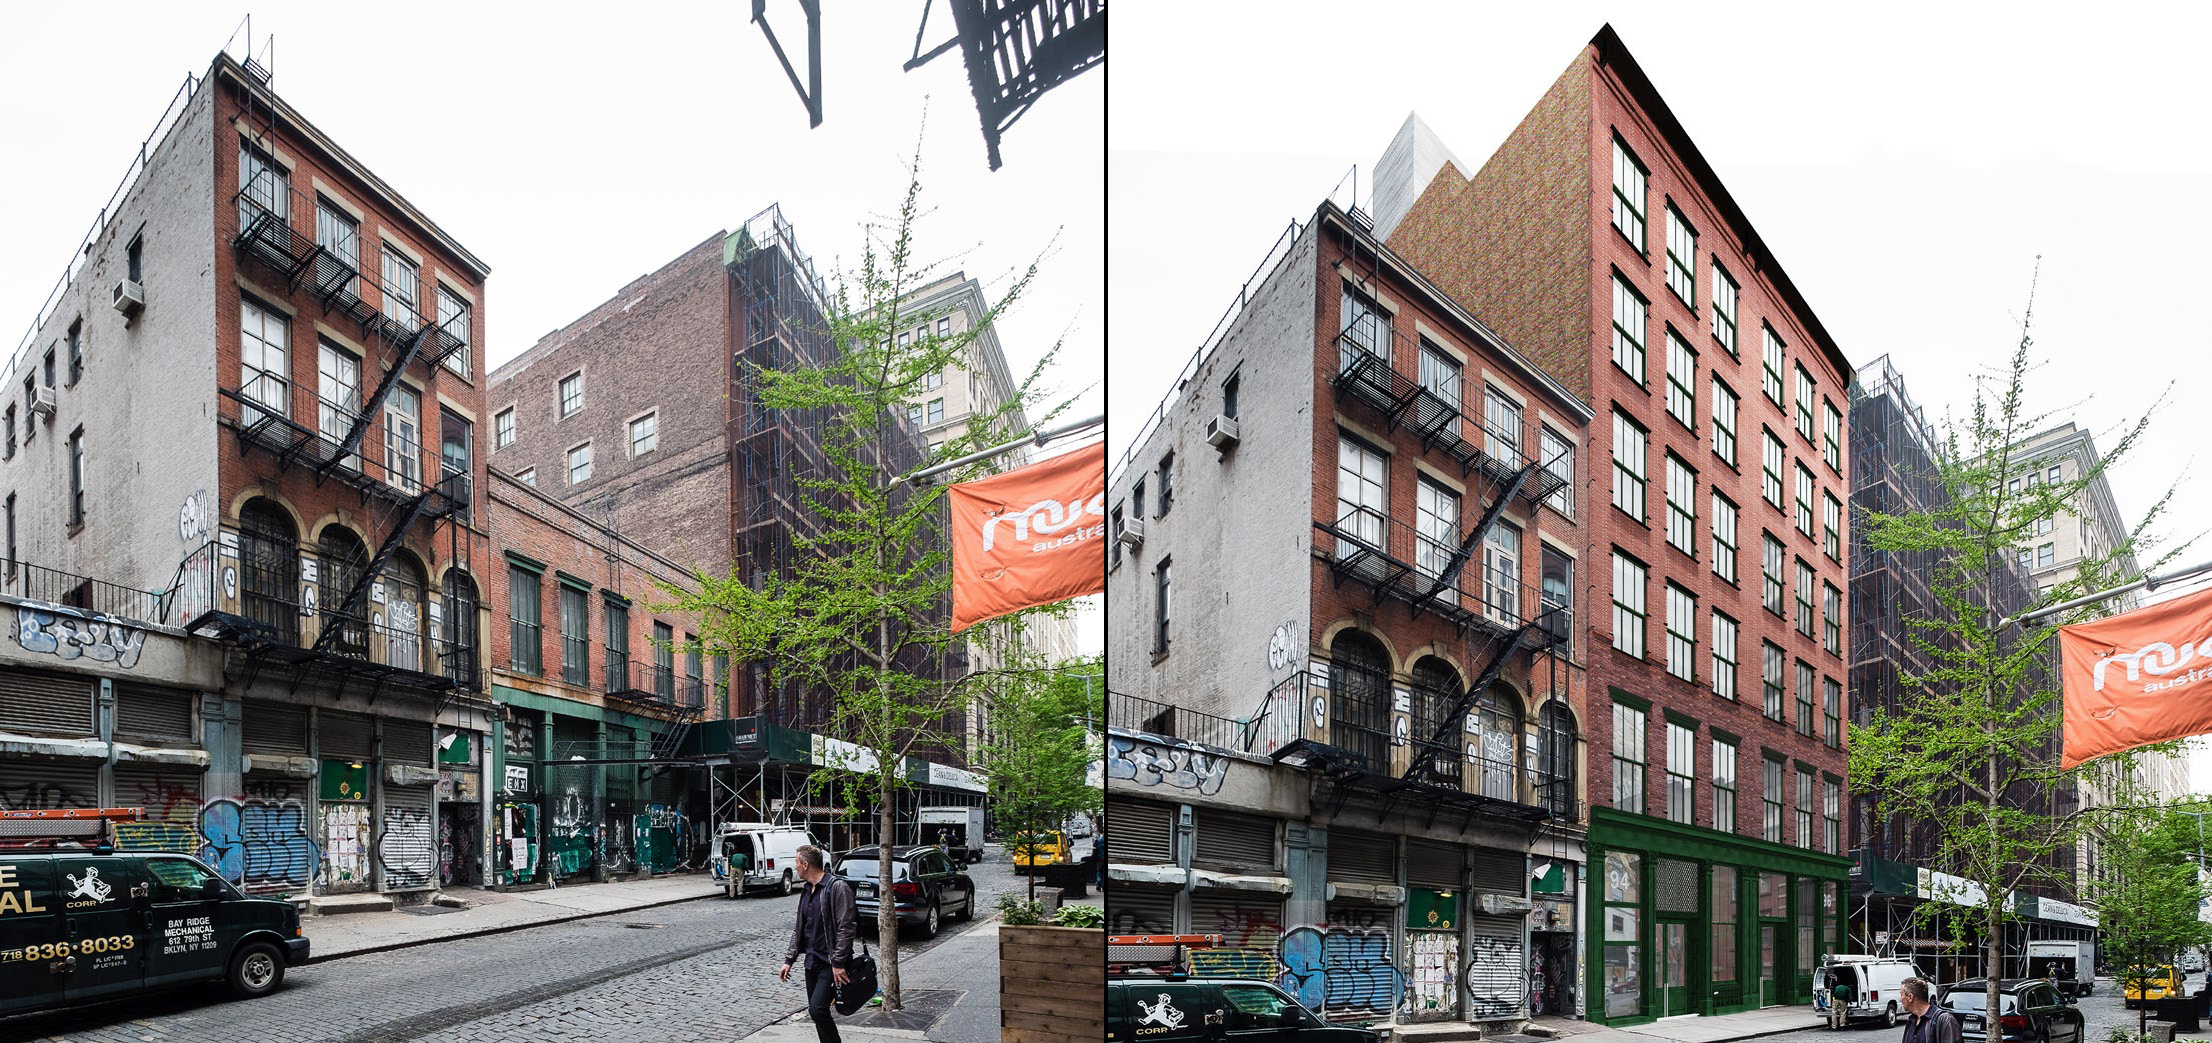 94-96 Crosby Street, existing and proposed